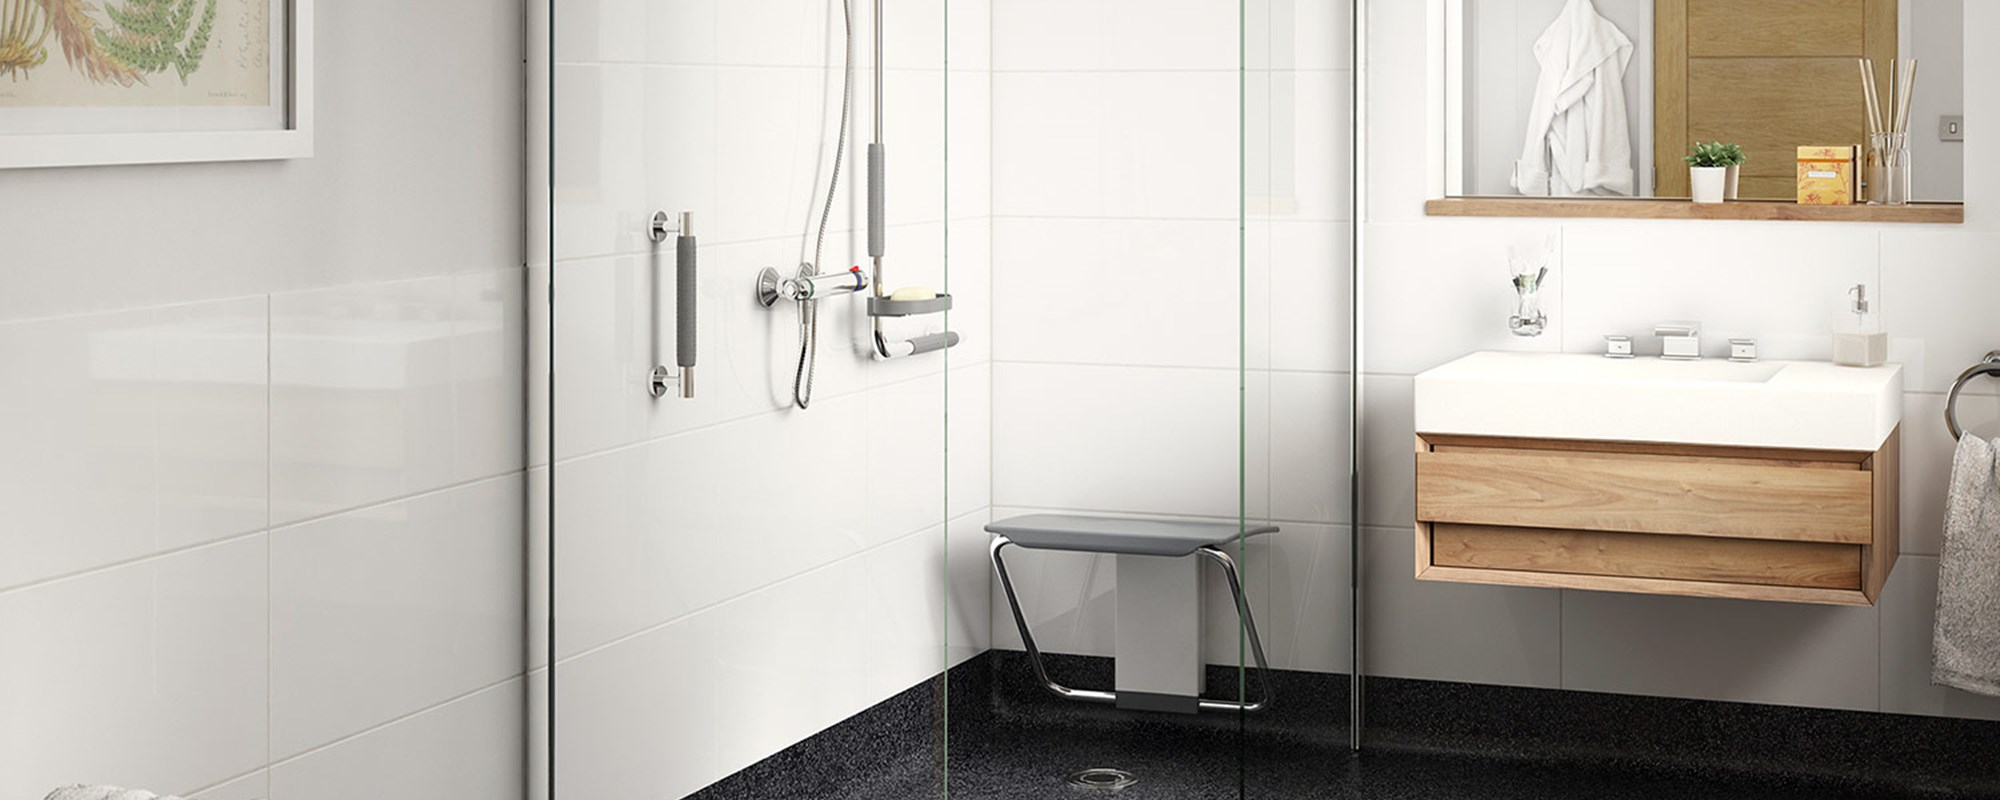 Accessible Shower For Care and Retirement Homes | Impey, The Wetroom ...